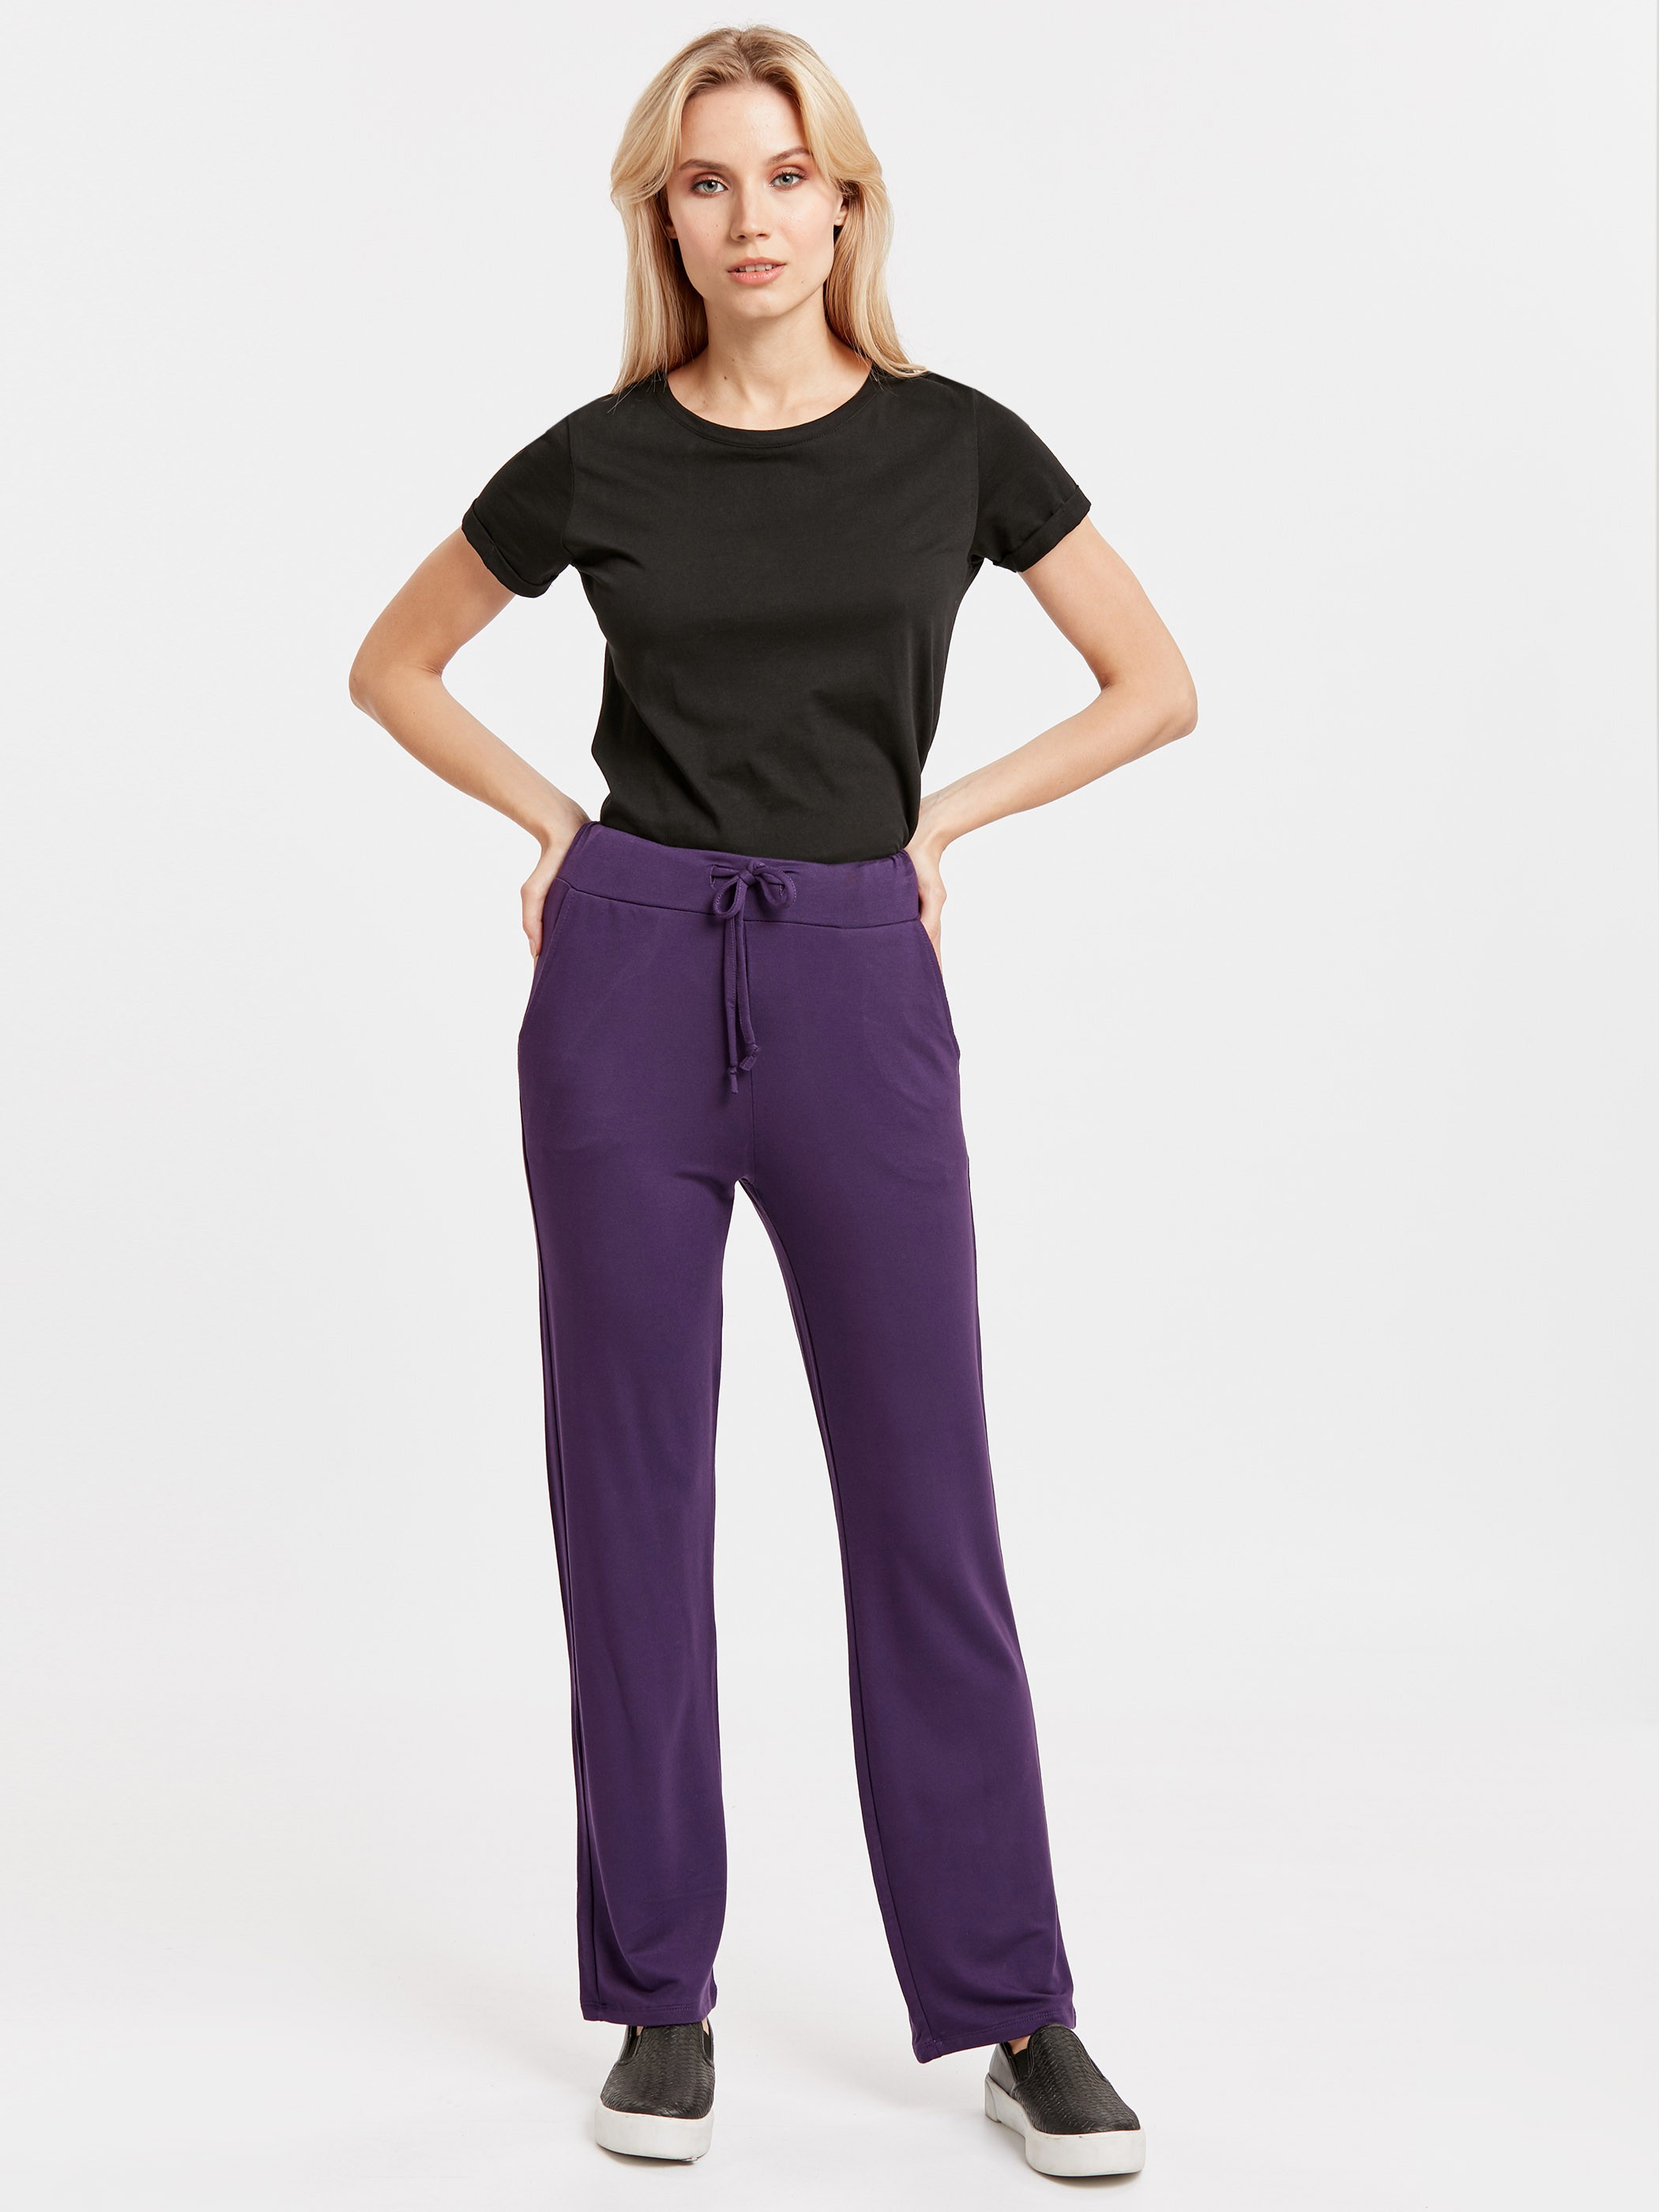 PURPLE - Sweatpants - 8W2436Z8